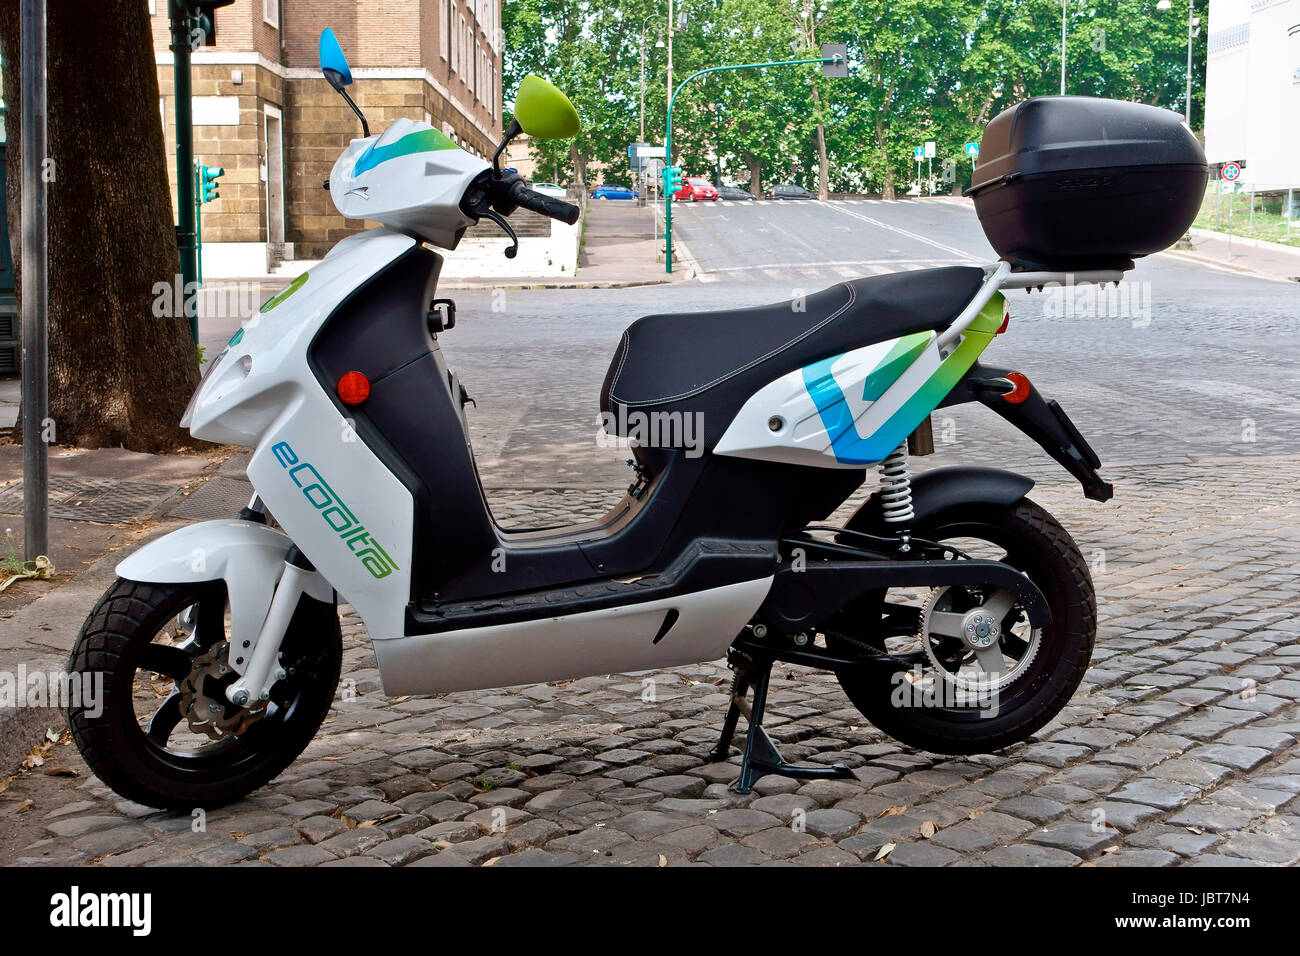 Ecooltra electric scooter sharing parked perpendicularly. Environment, e-mobility, emission-free, eco-friendly, Stock Photo